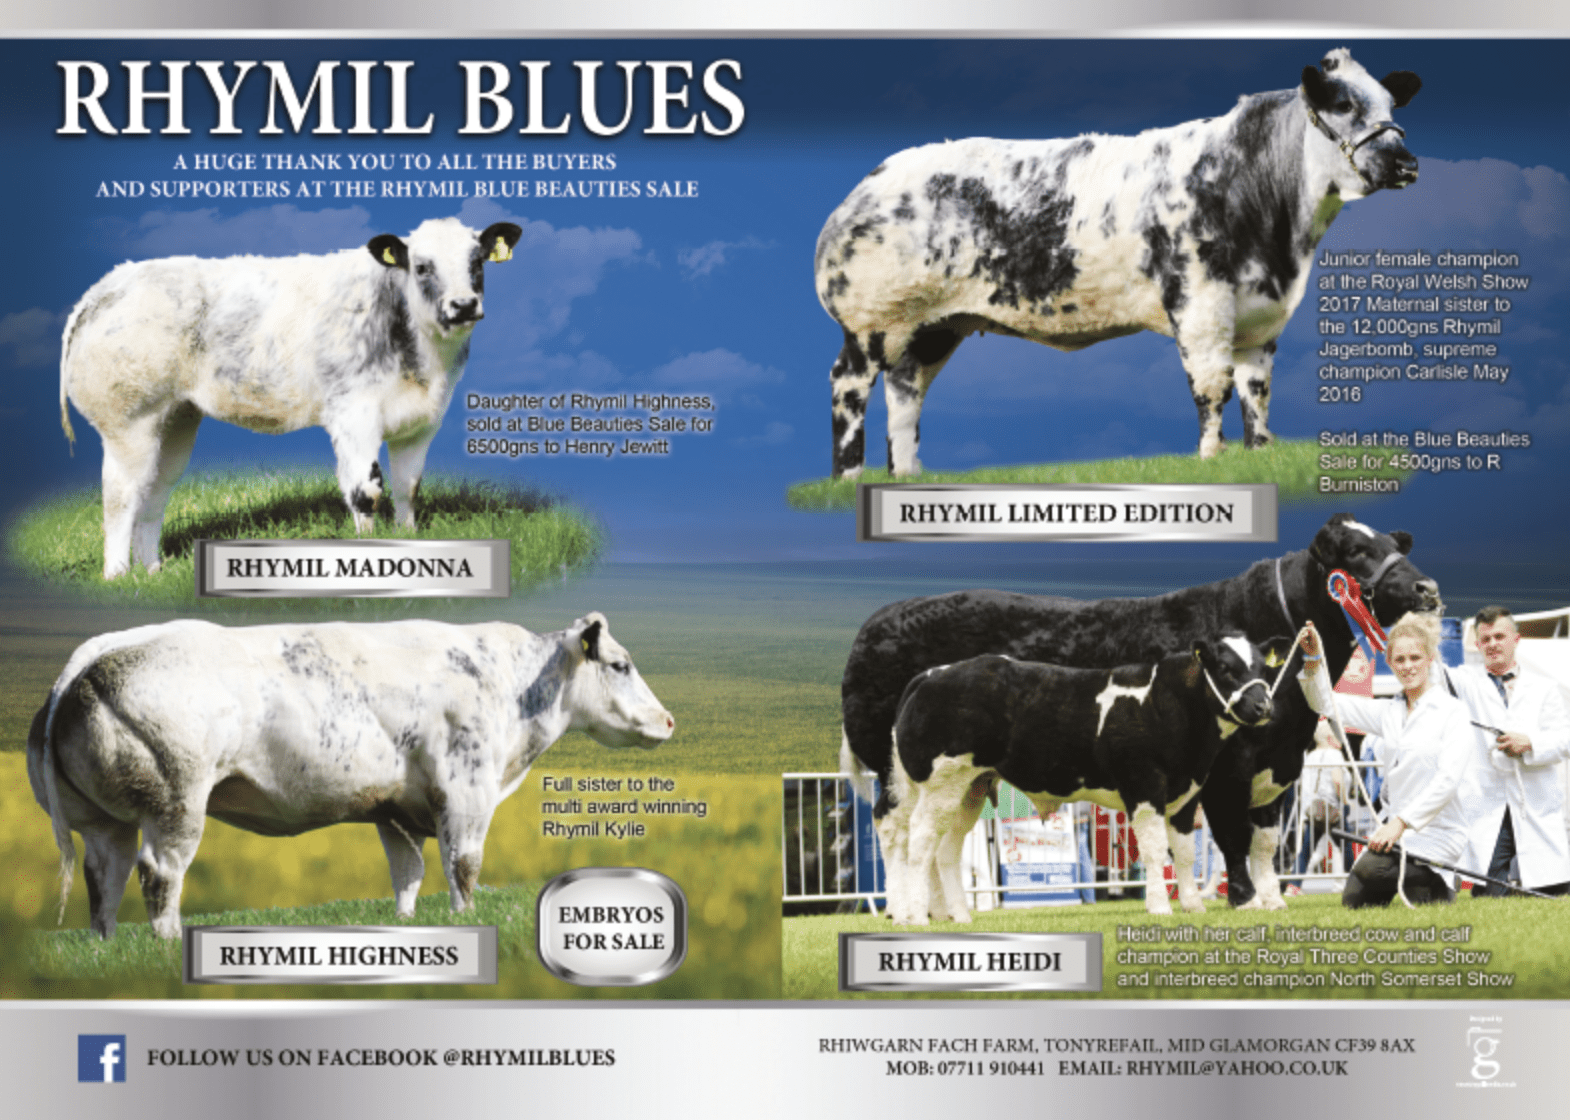 Photography and advert artwork for Rhymil Blues